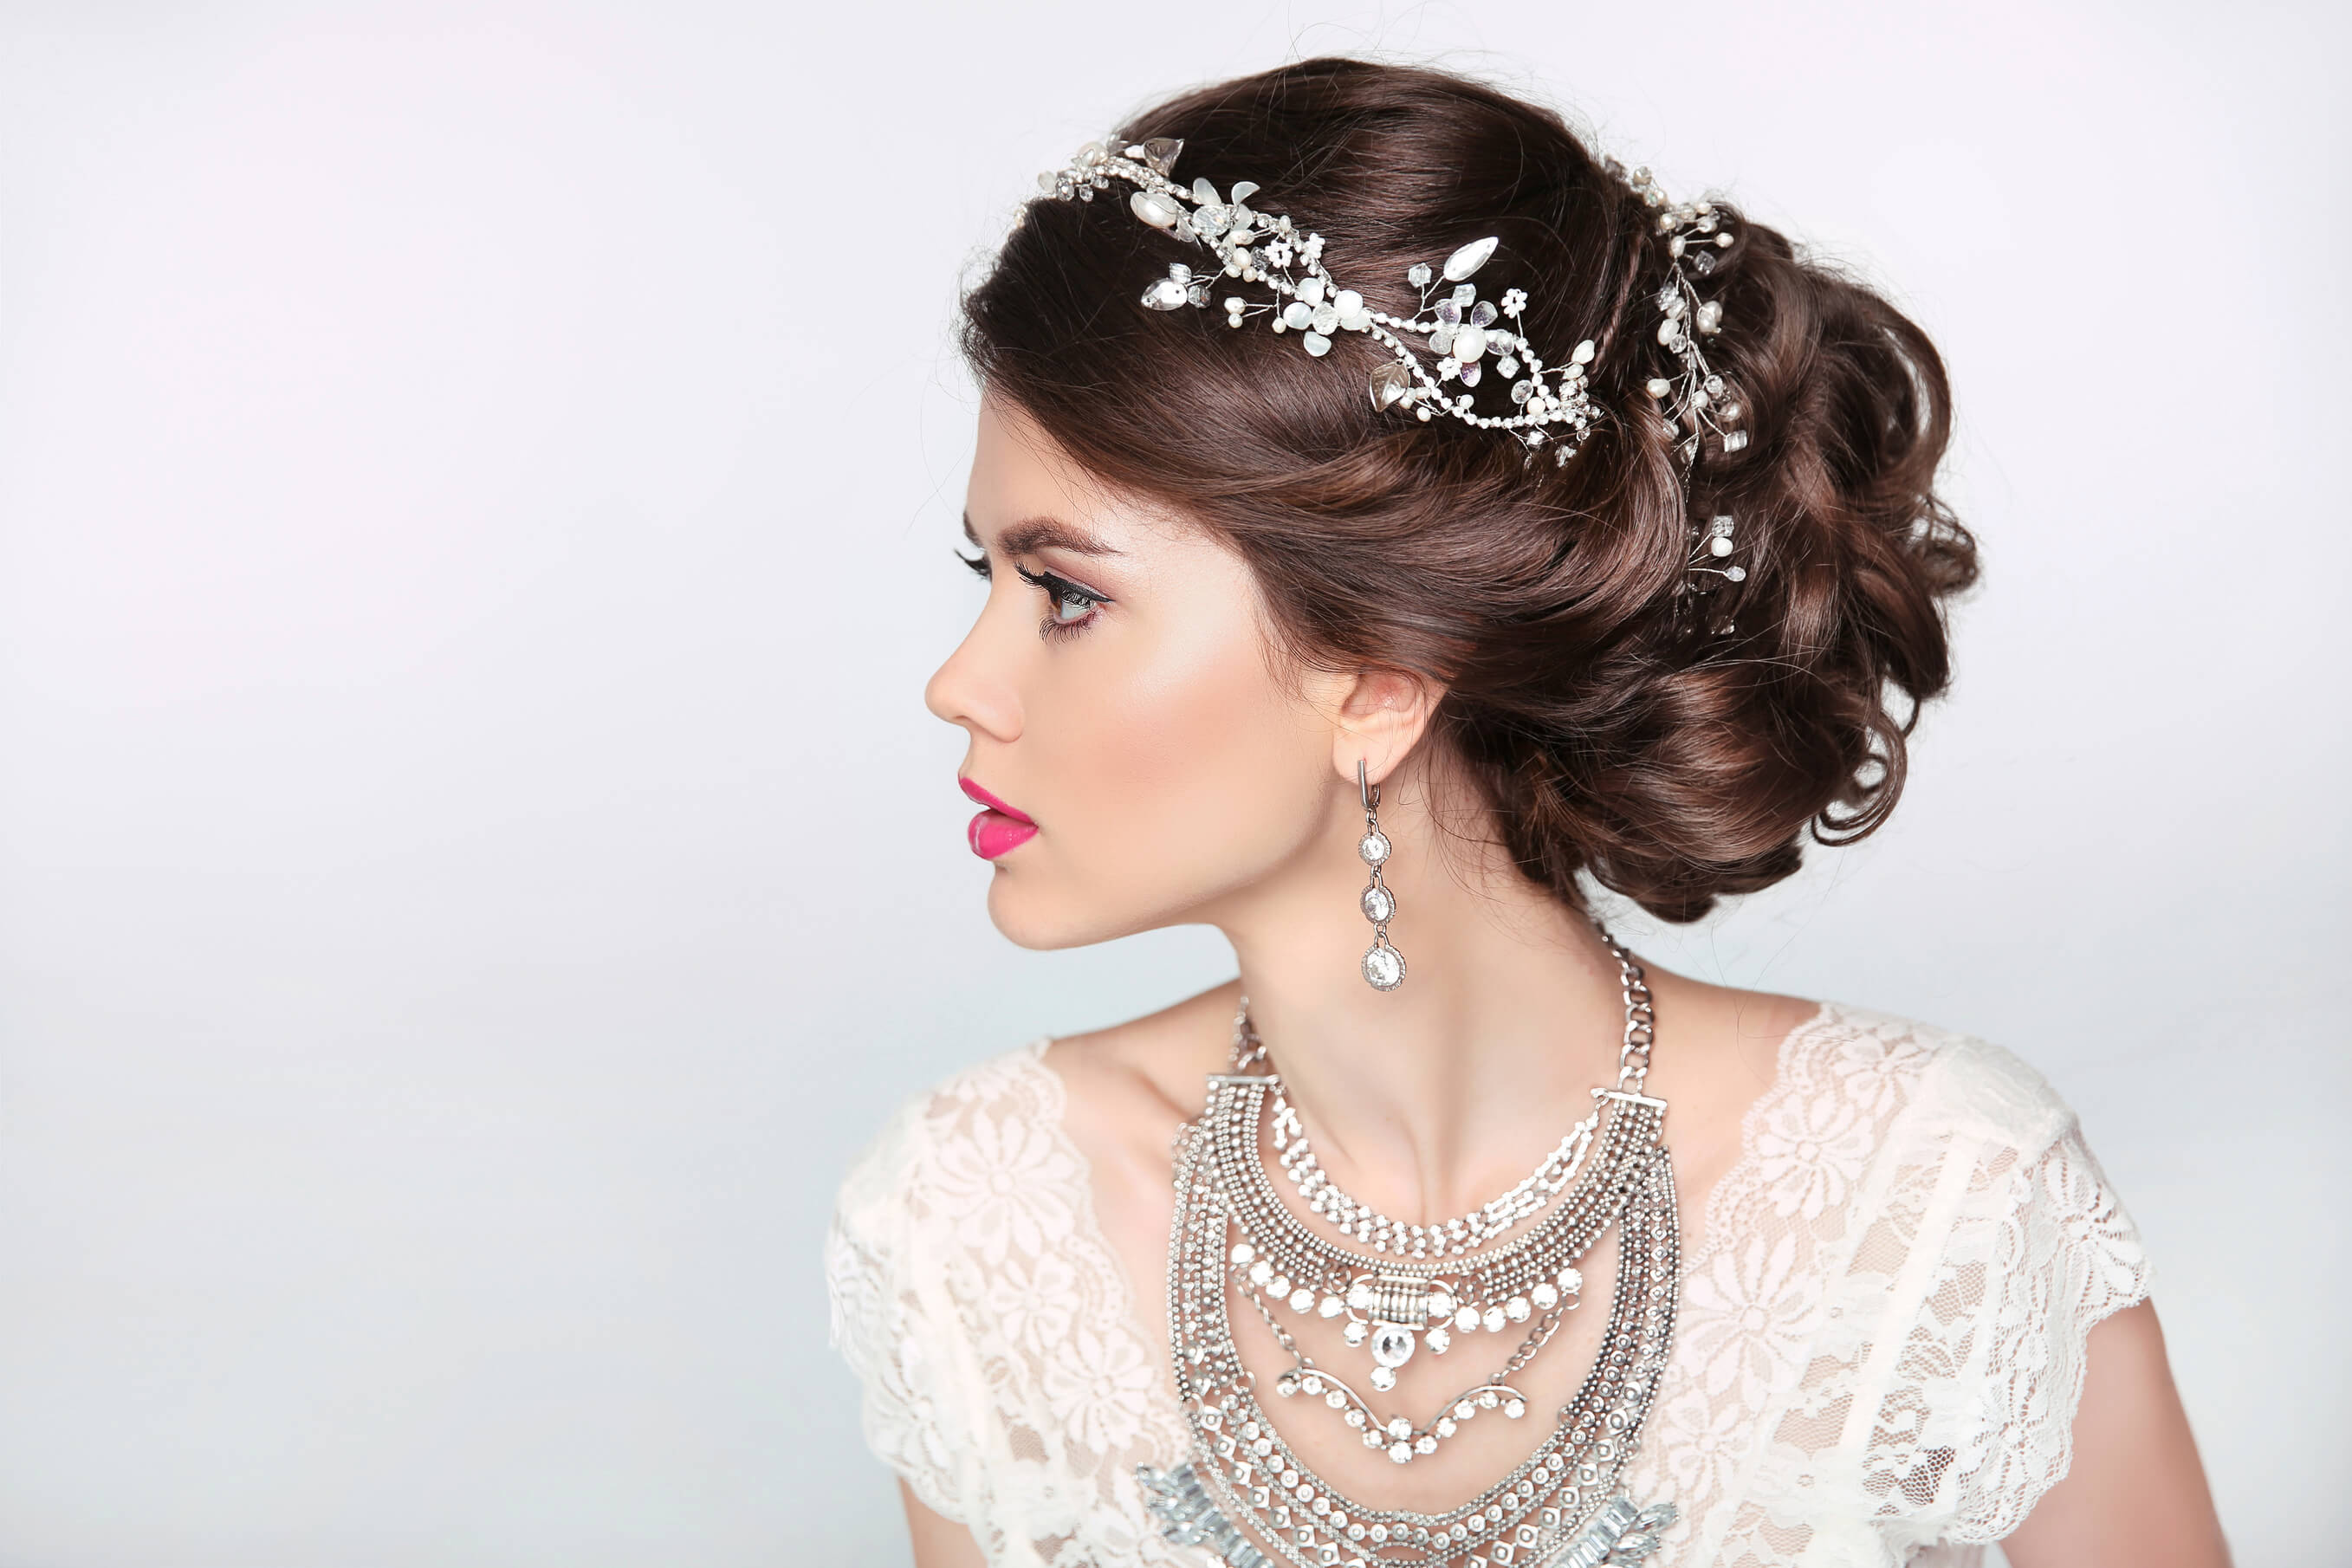 bridal headband ideas 5 looks to try for your wedding. Black Bedroom Furniture Sets. Home Design Ideas